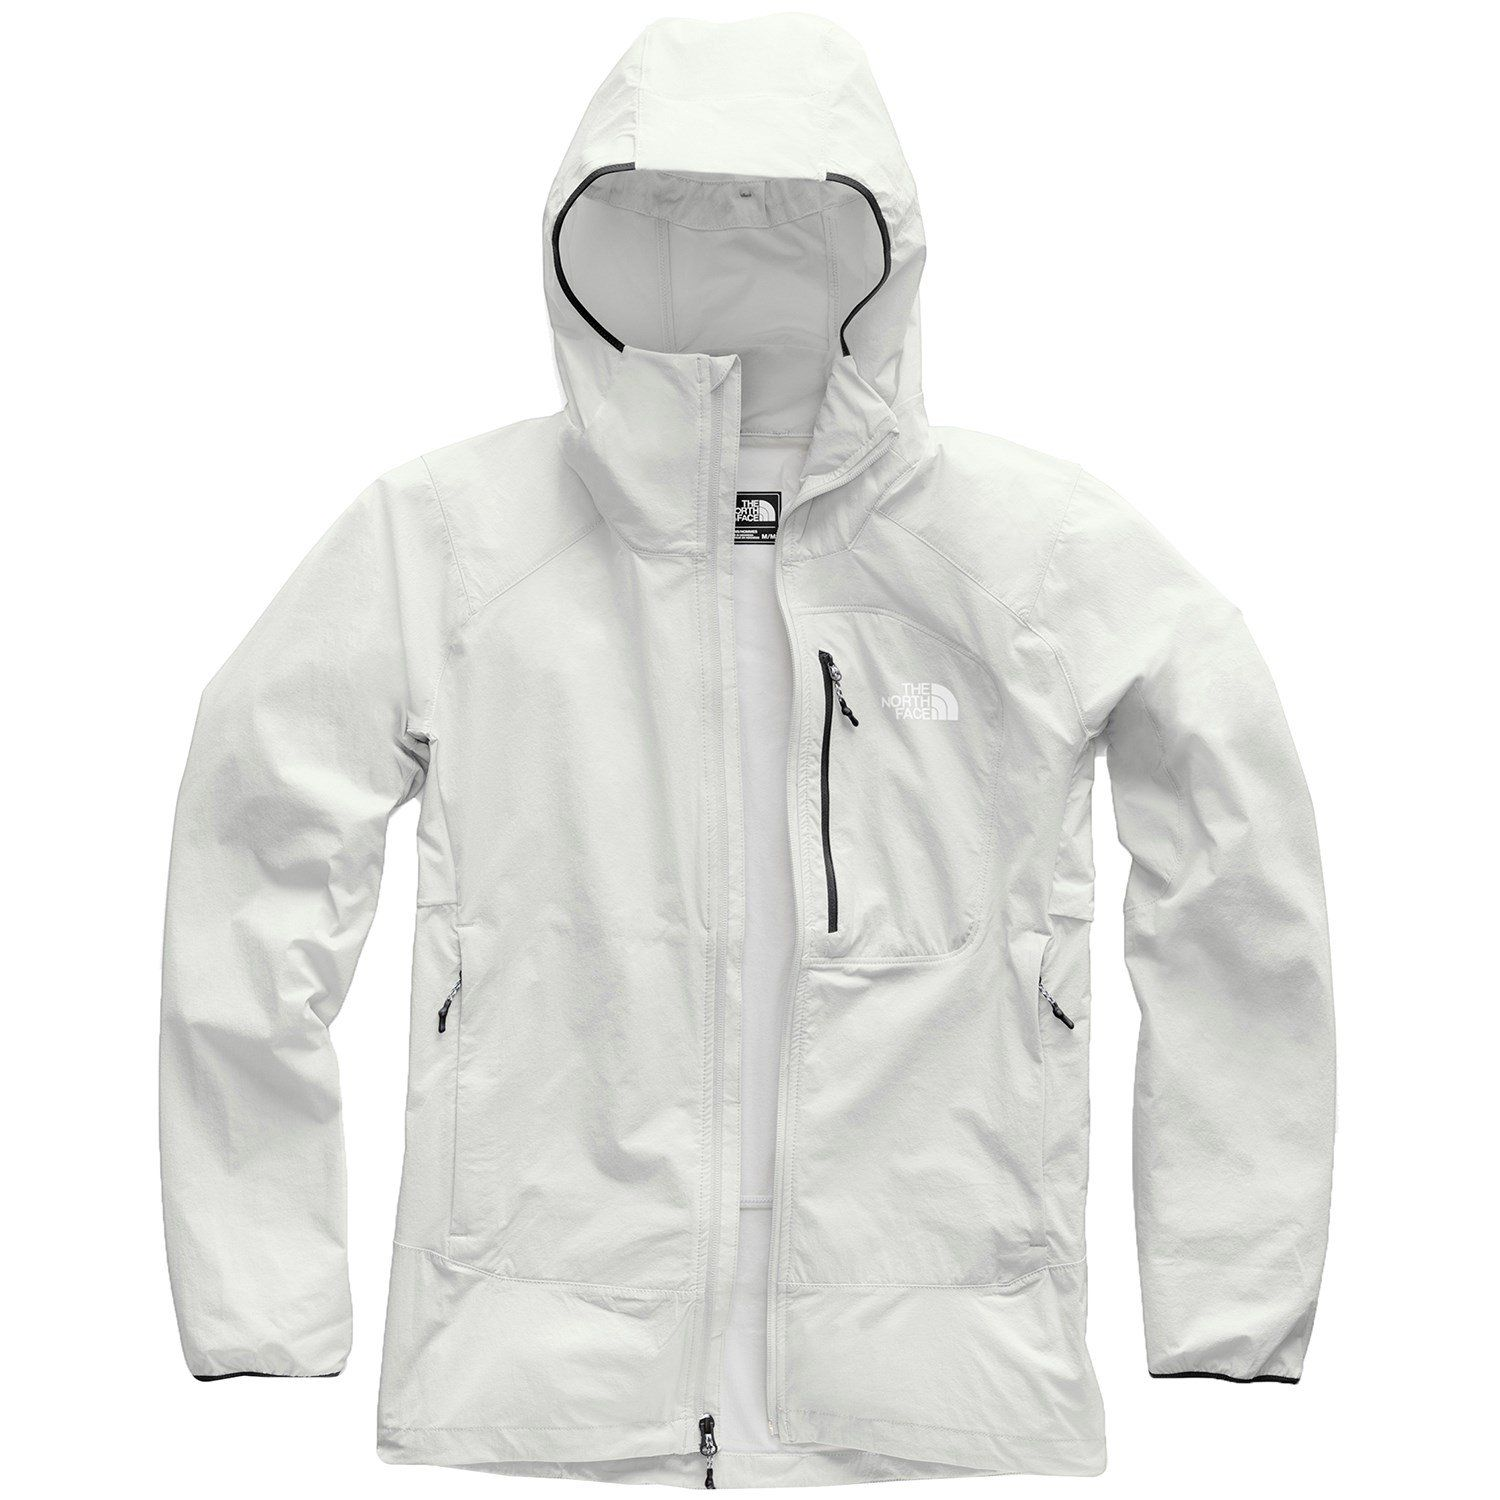 The North Face Dome Stretch Wind Jacket 2019 Large Gray North Face Jacket Outfit North Face Jacket Wind Jacket [ 1500 x 1500 Pixel ]